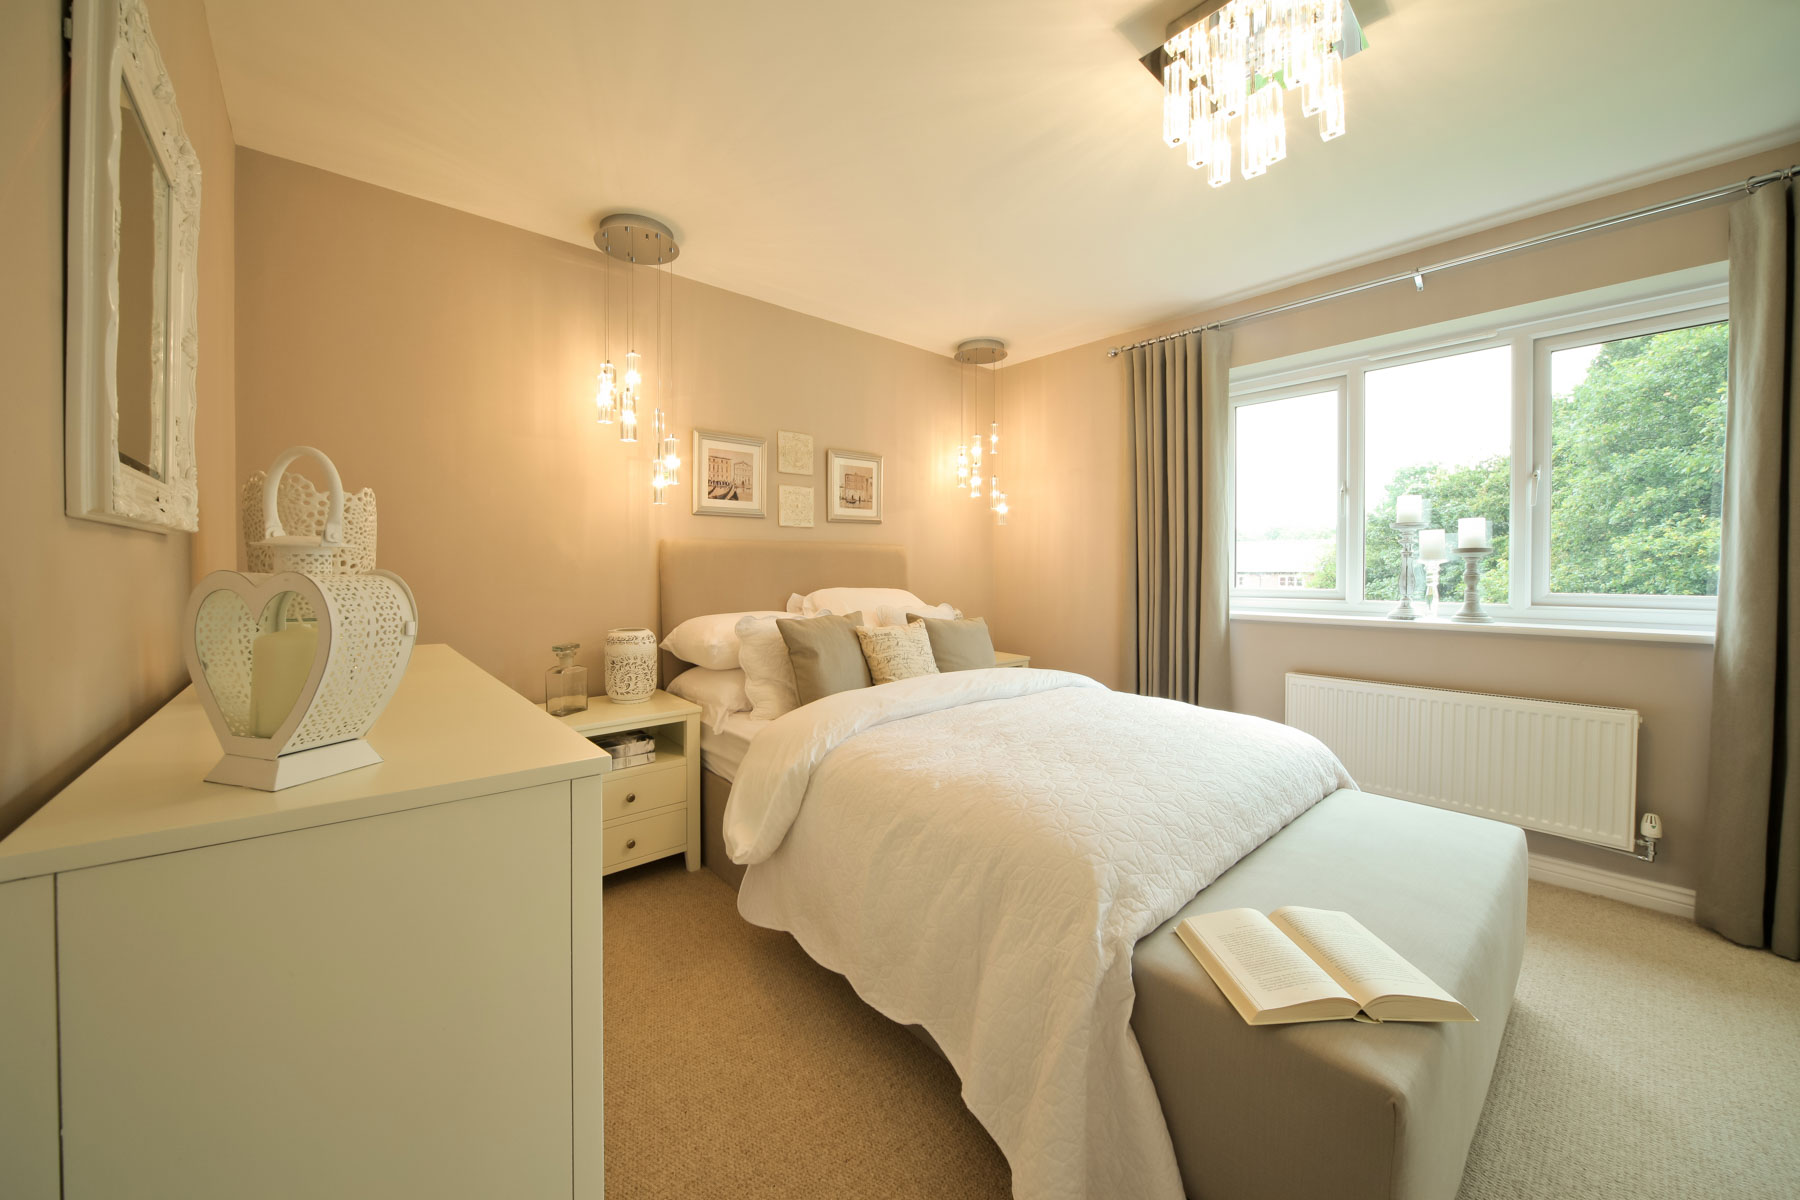 012_OM_Alton_Bedroom_2